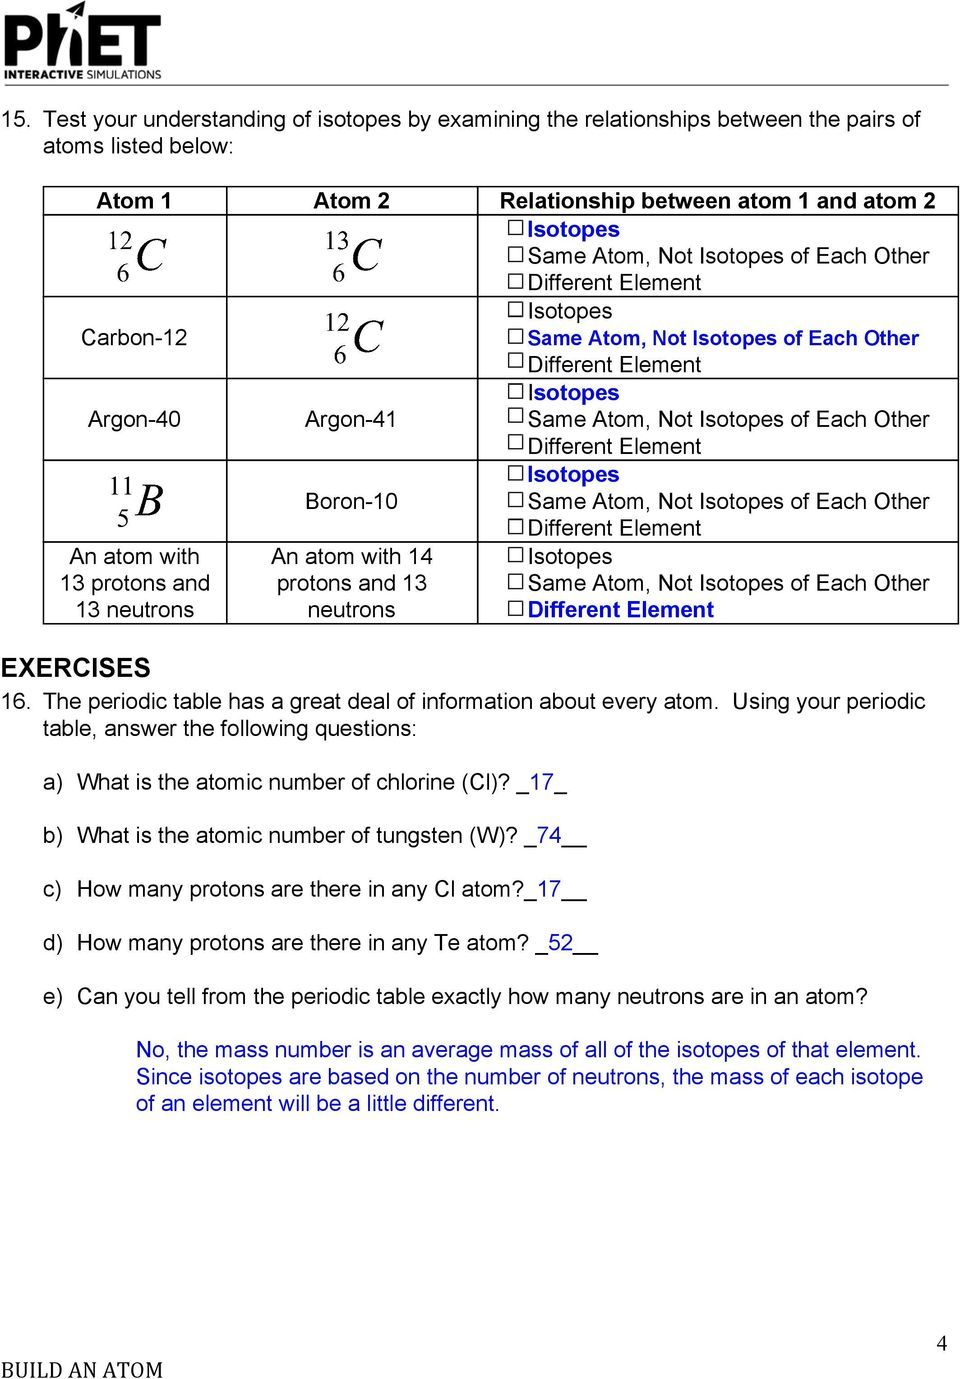 Electrons In Atoms Worksheet Answers